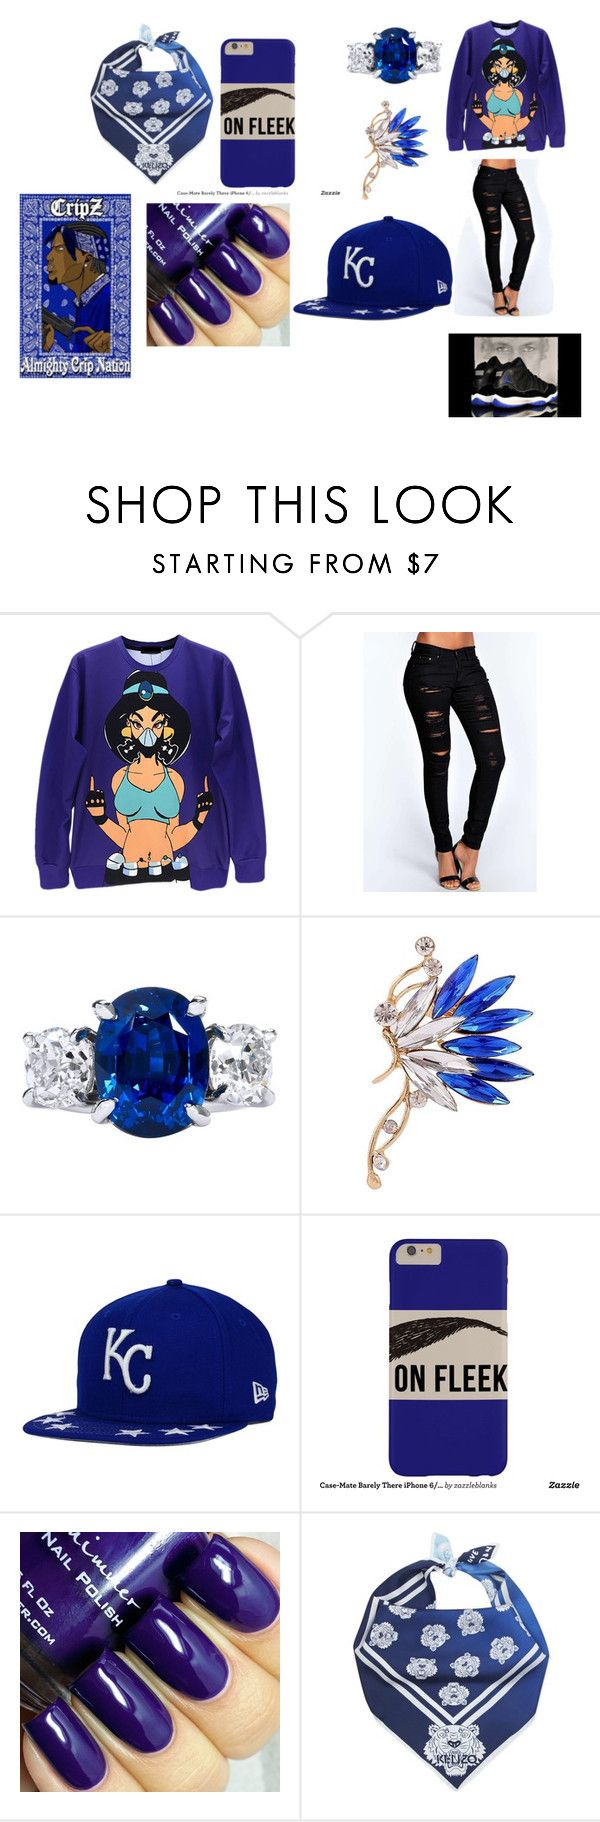 Crip gang bish by samyacox liked on polyvore featuring for 52 hoover crip tattoos